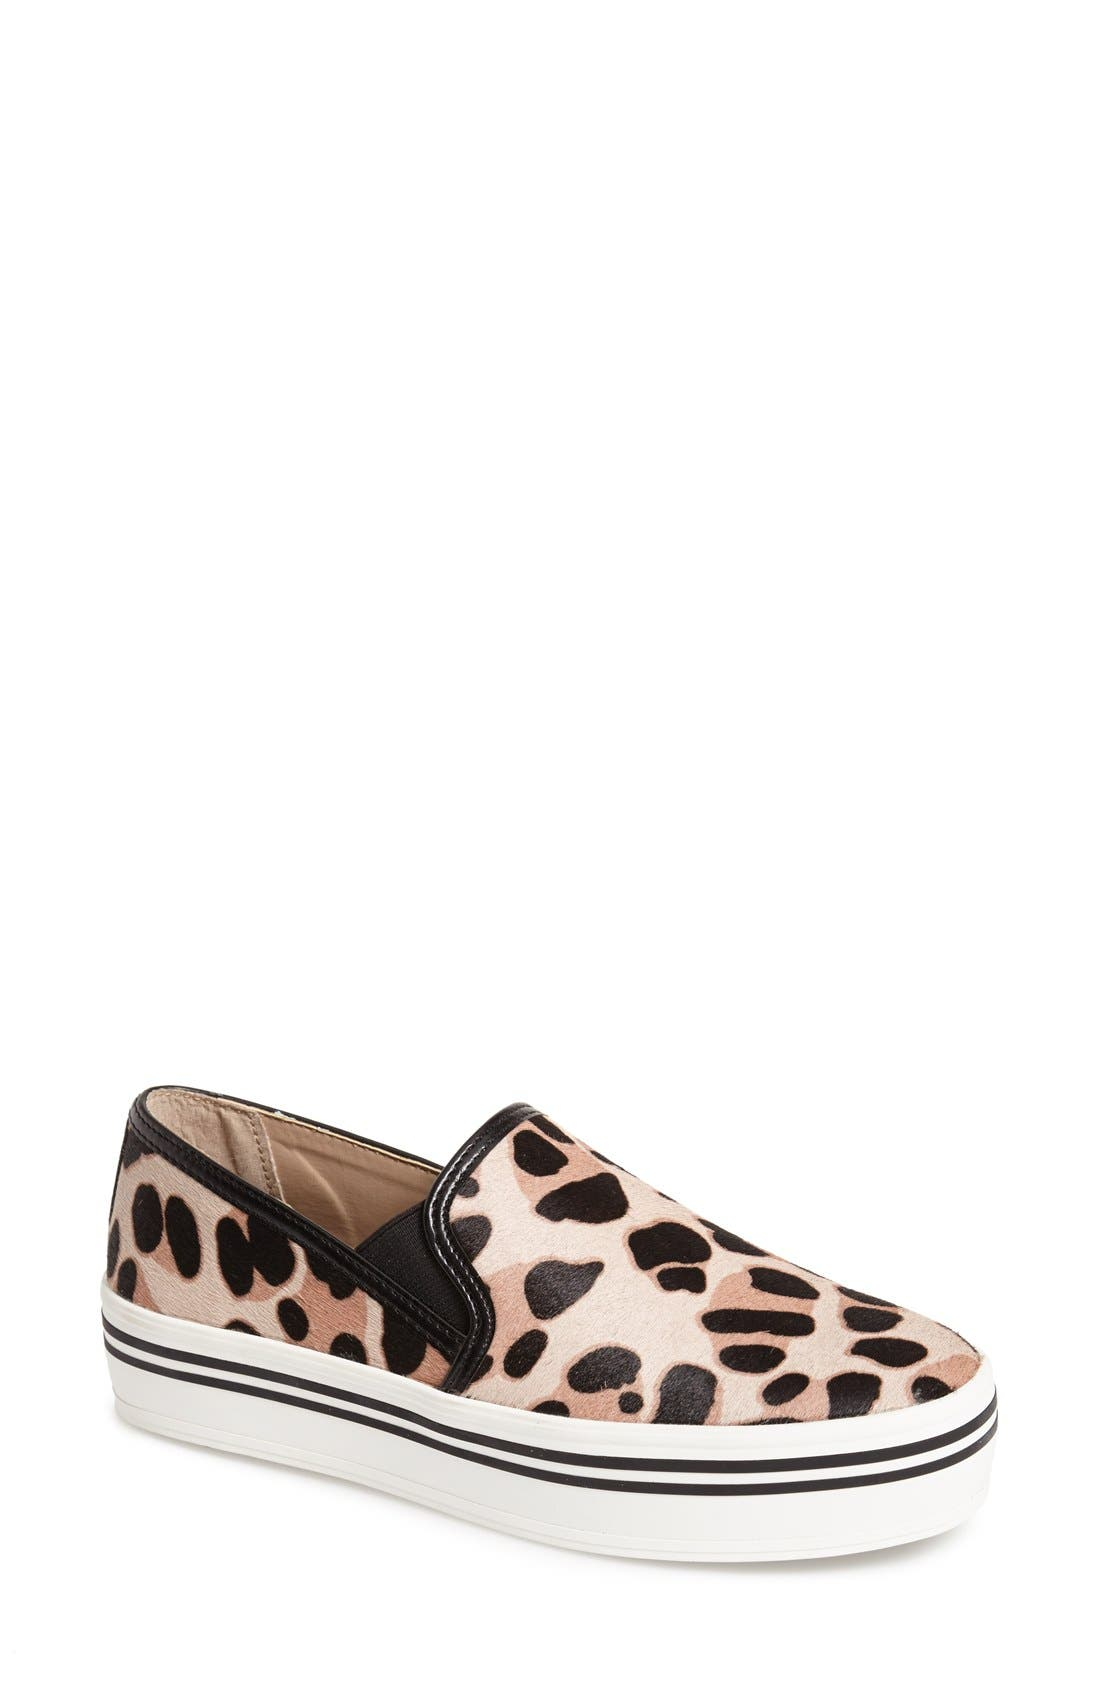 DV by Dolce Vita 'Jinsy' Slip-On Sneaker,                             Main thumbnail 1, color,                             Leopard